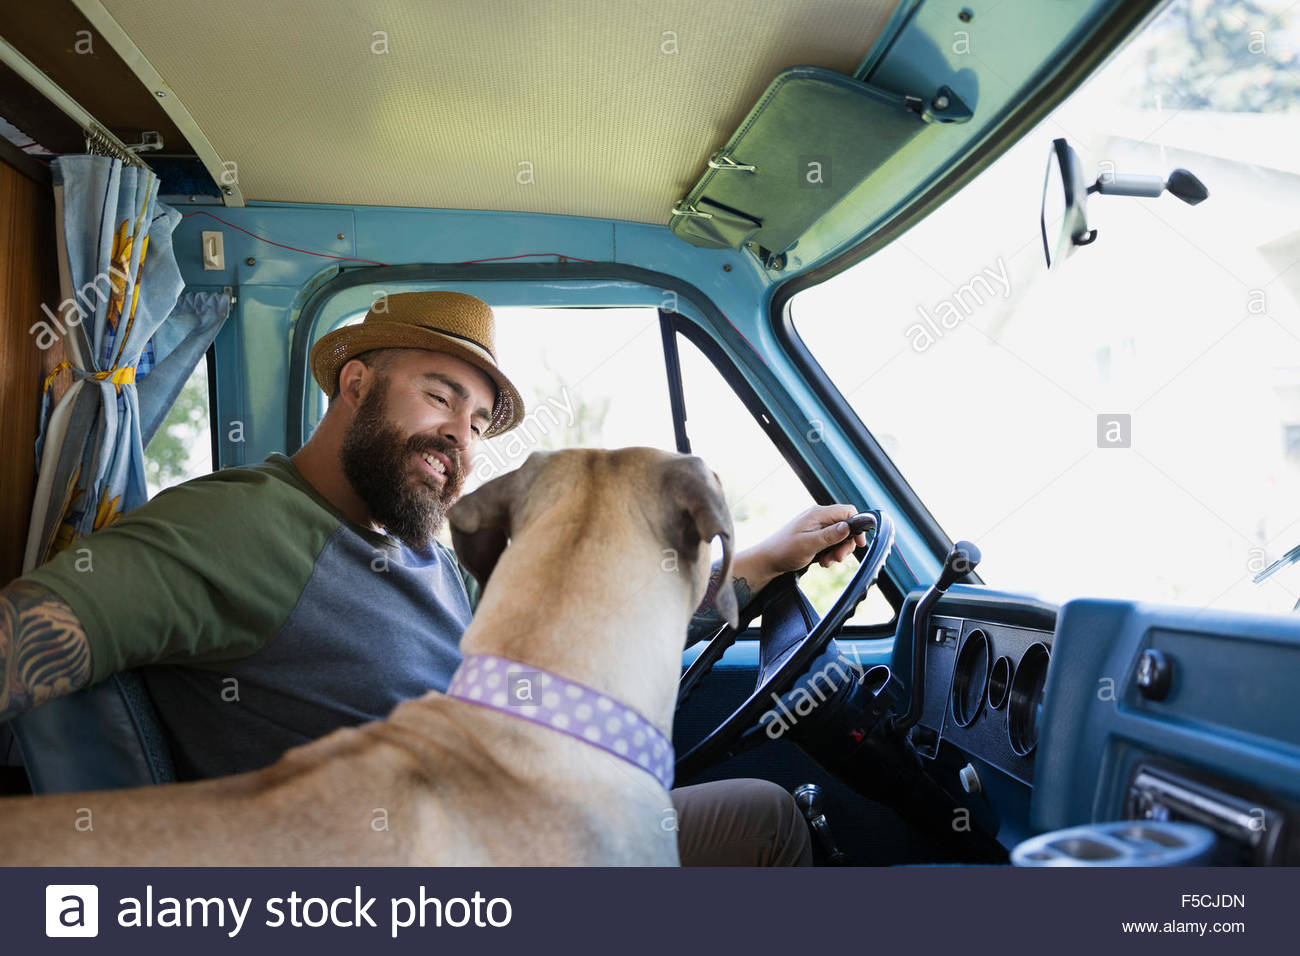 Man and dog in van - Stock Image